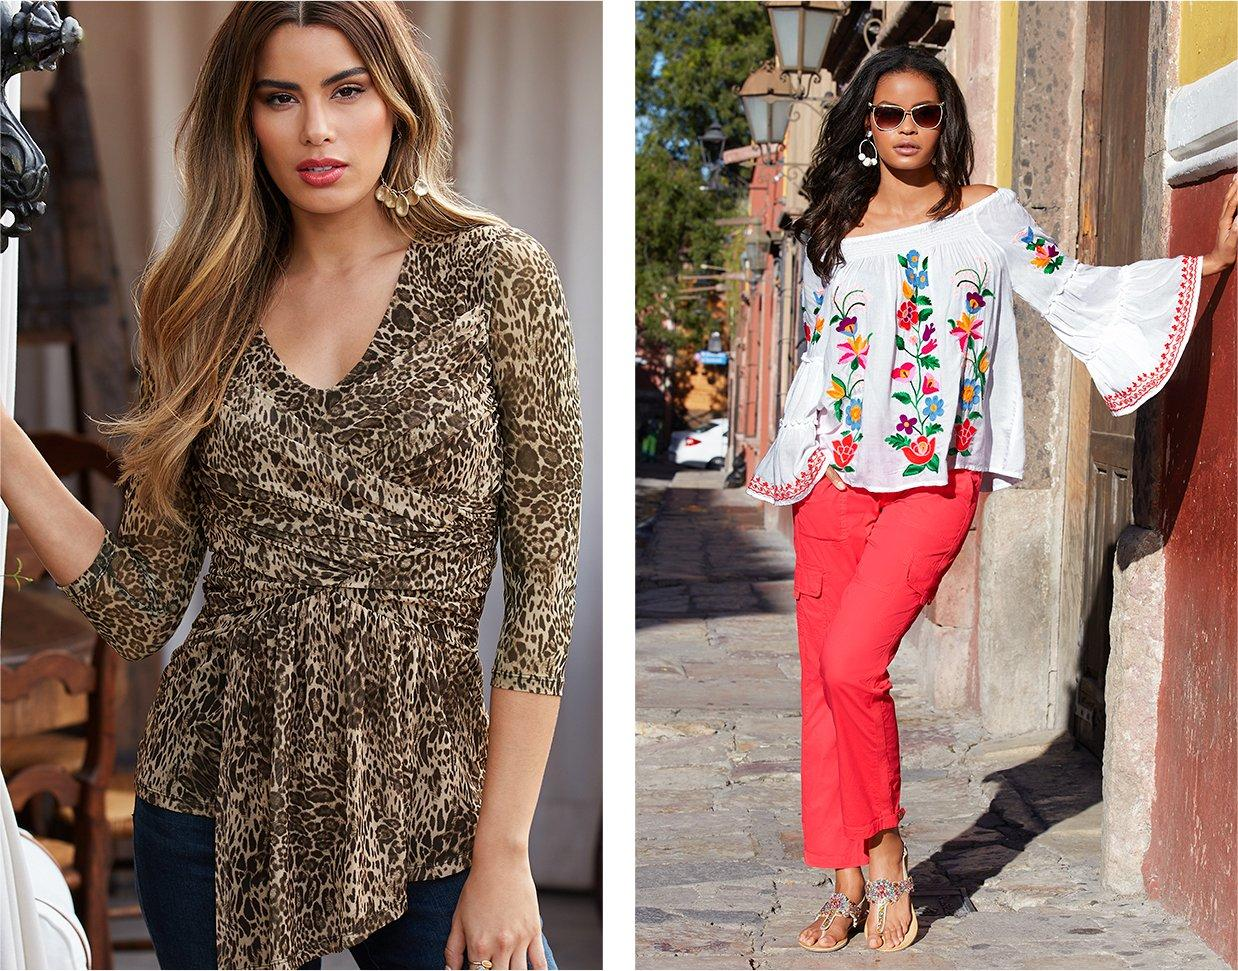 left model wearing a ruched animal print three-quarter sleeve top and jeans. right model wearing a white off-the-shoulder flare sleeve top with floral embroidery, coral cargo pants, embellished sandals, and sunglasses.